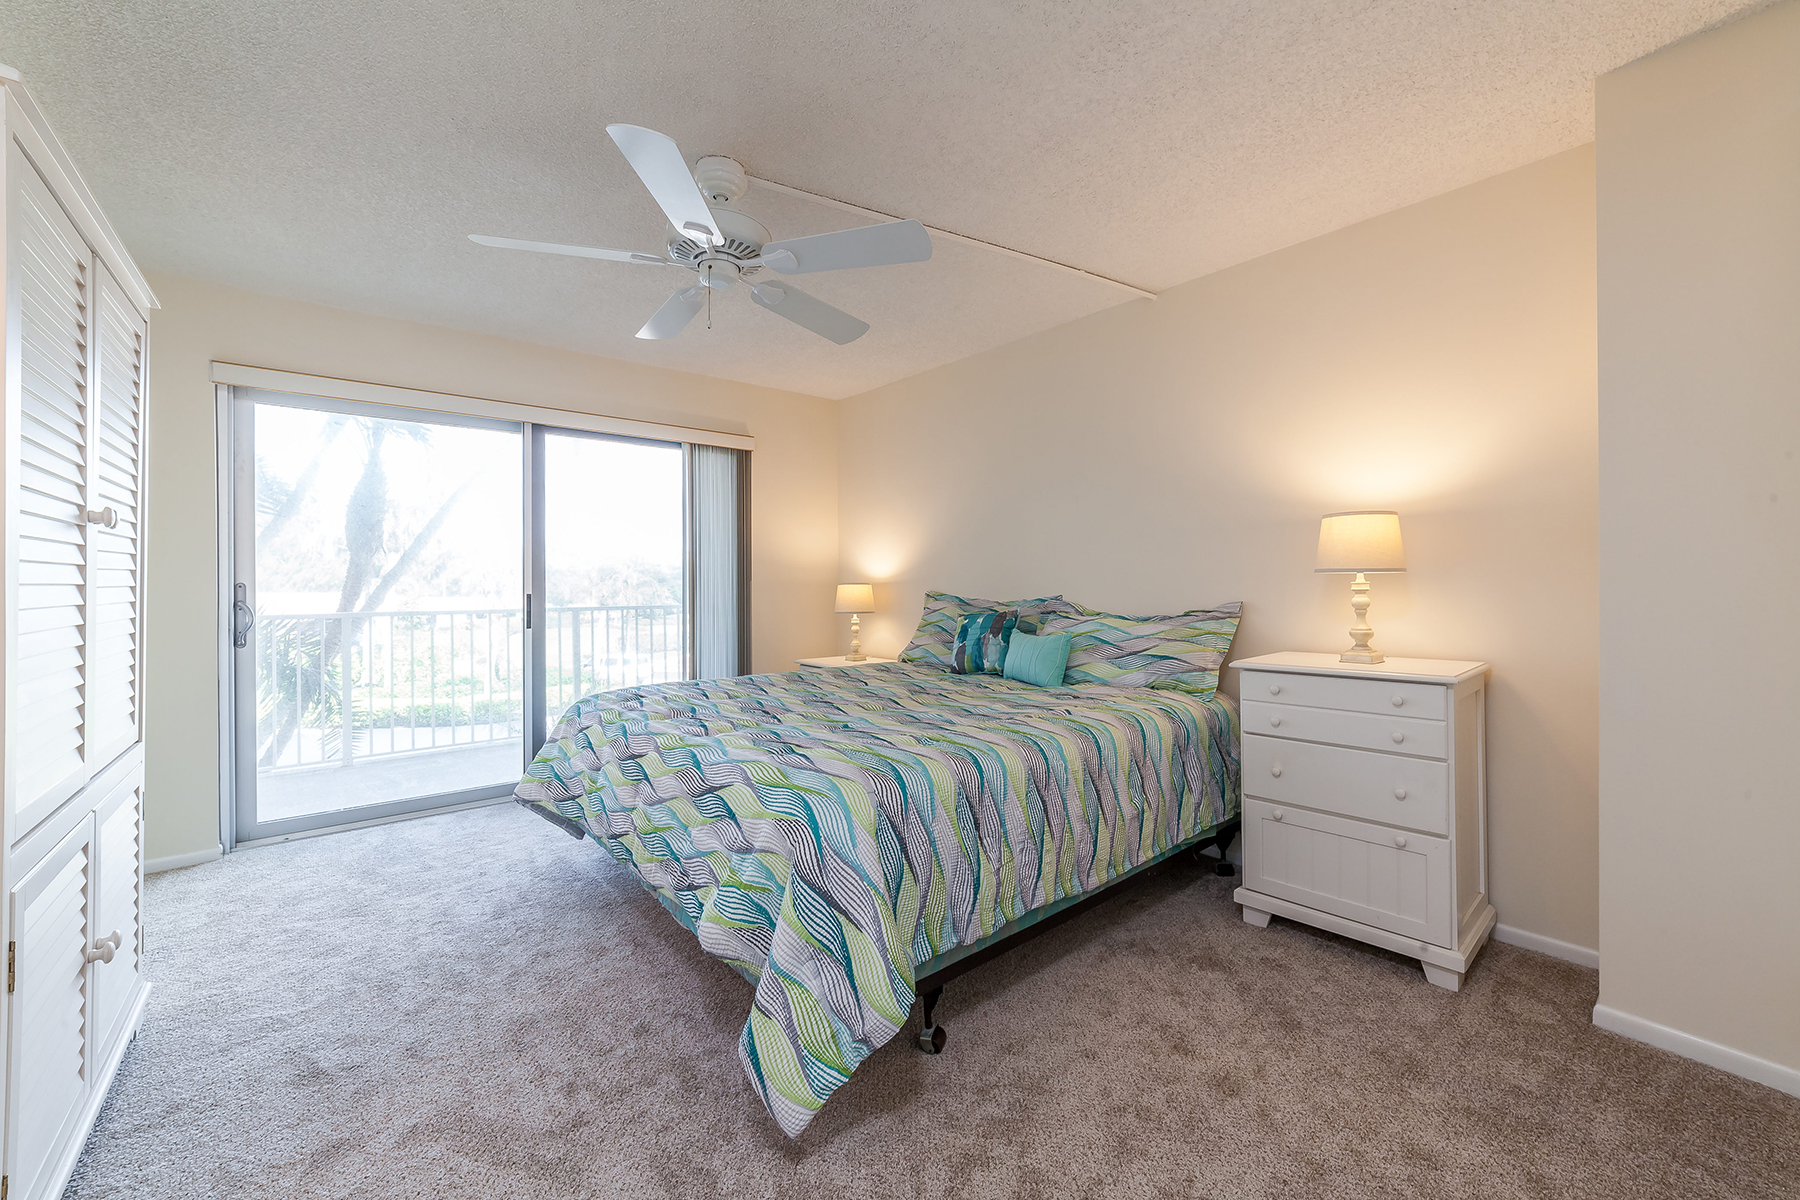 Condominium for Sale at LONGBOAT KEY 2295 Gulf Of Mexico Dr 24 Longboat Key, Florida, 34228 United States